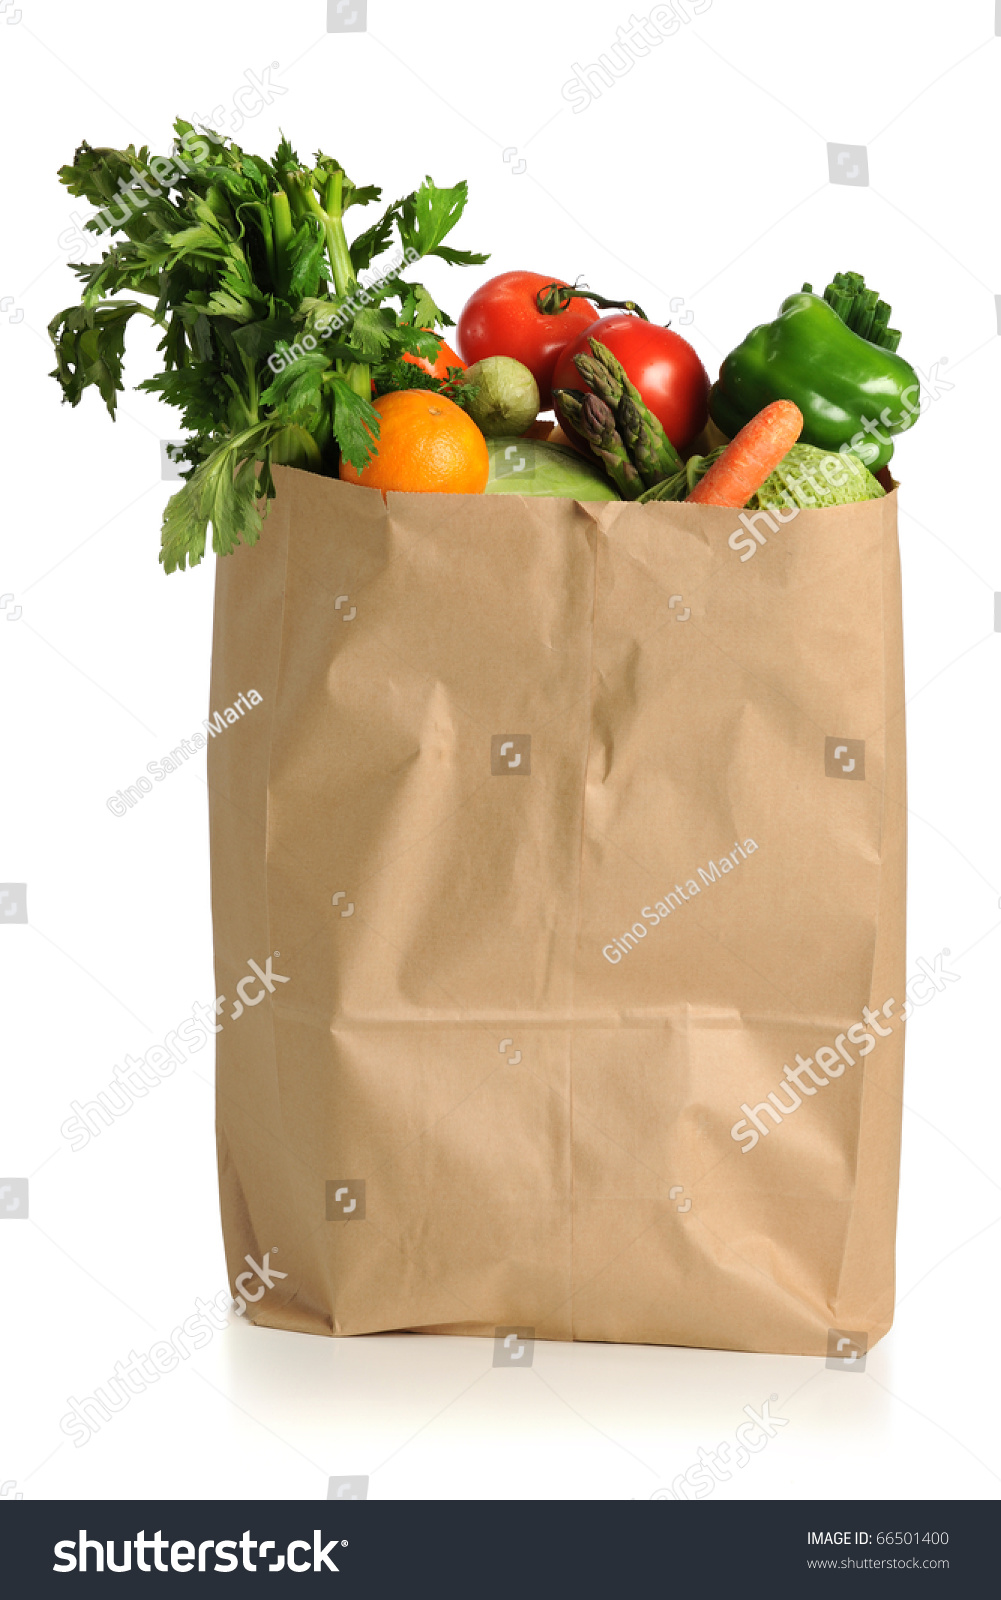 Assorted Fruits Vegetables Brown Grocery Bag Stock Photo 66501400 ...